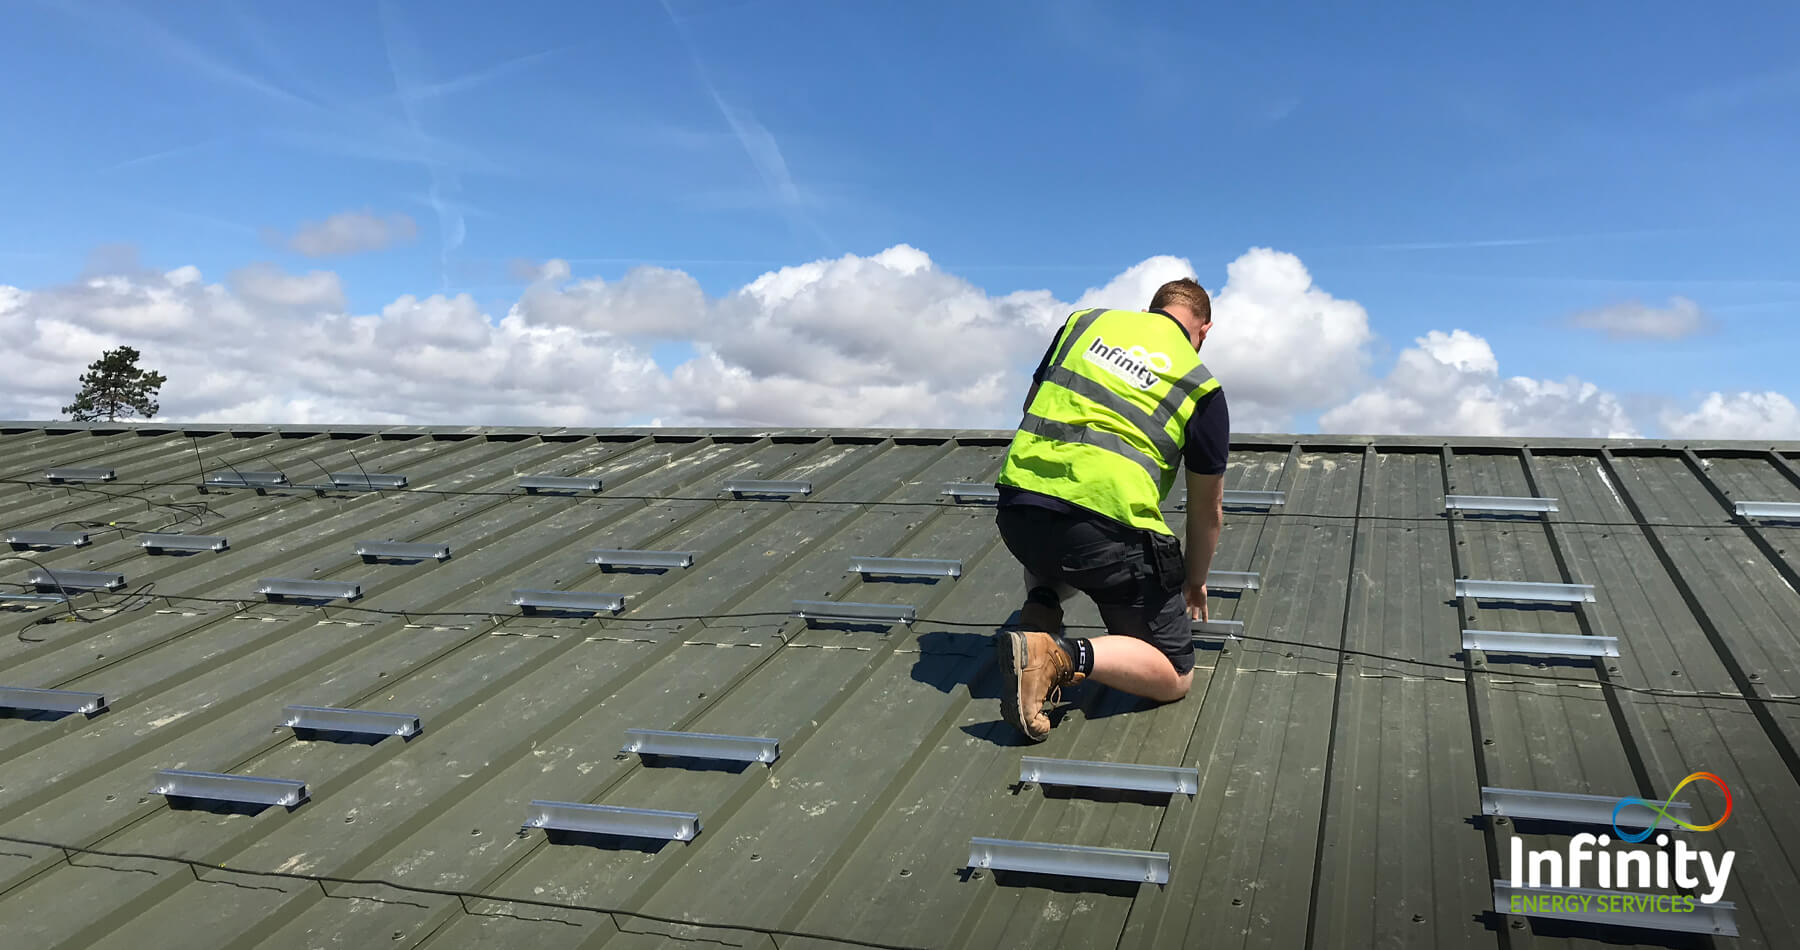 gallery solar business 2 - Solar Panels for Business